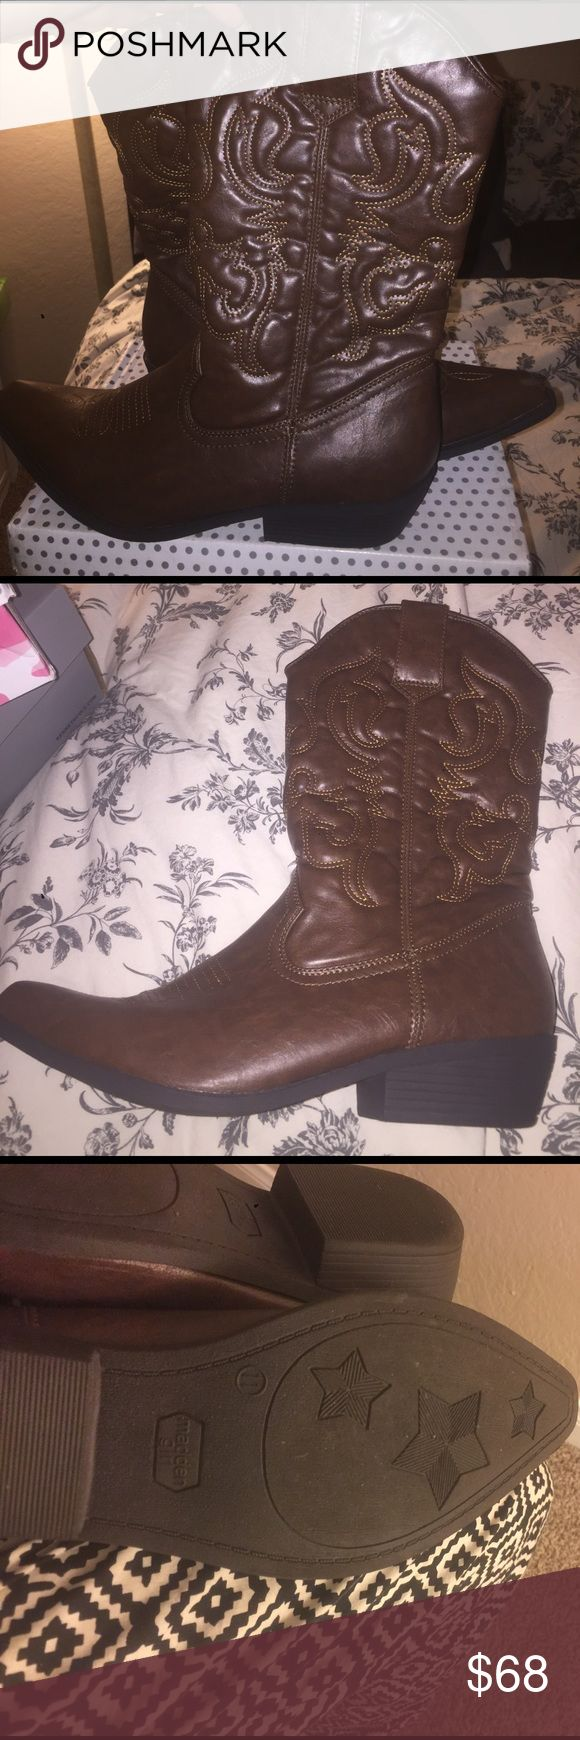 Steve Madden Madden girl cowboy boots, used once Size 11 Steve Madden Madden girl, dark brown cowboy boots, used once, EXCELLENT CONDITION and GREAT QUALITY Steve Madden Shoes Combat & Moto Boots